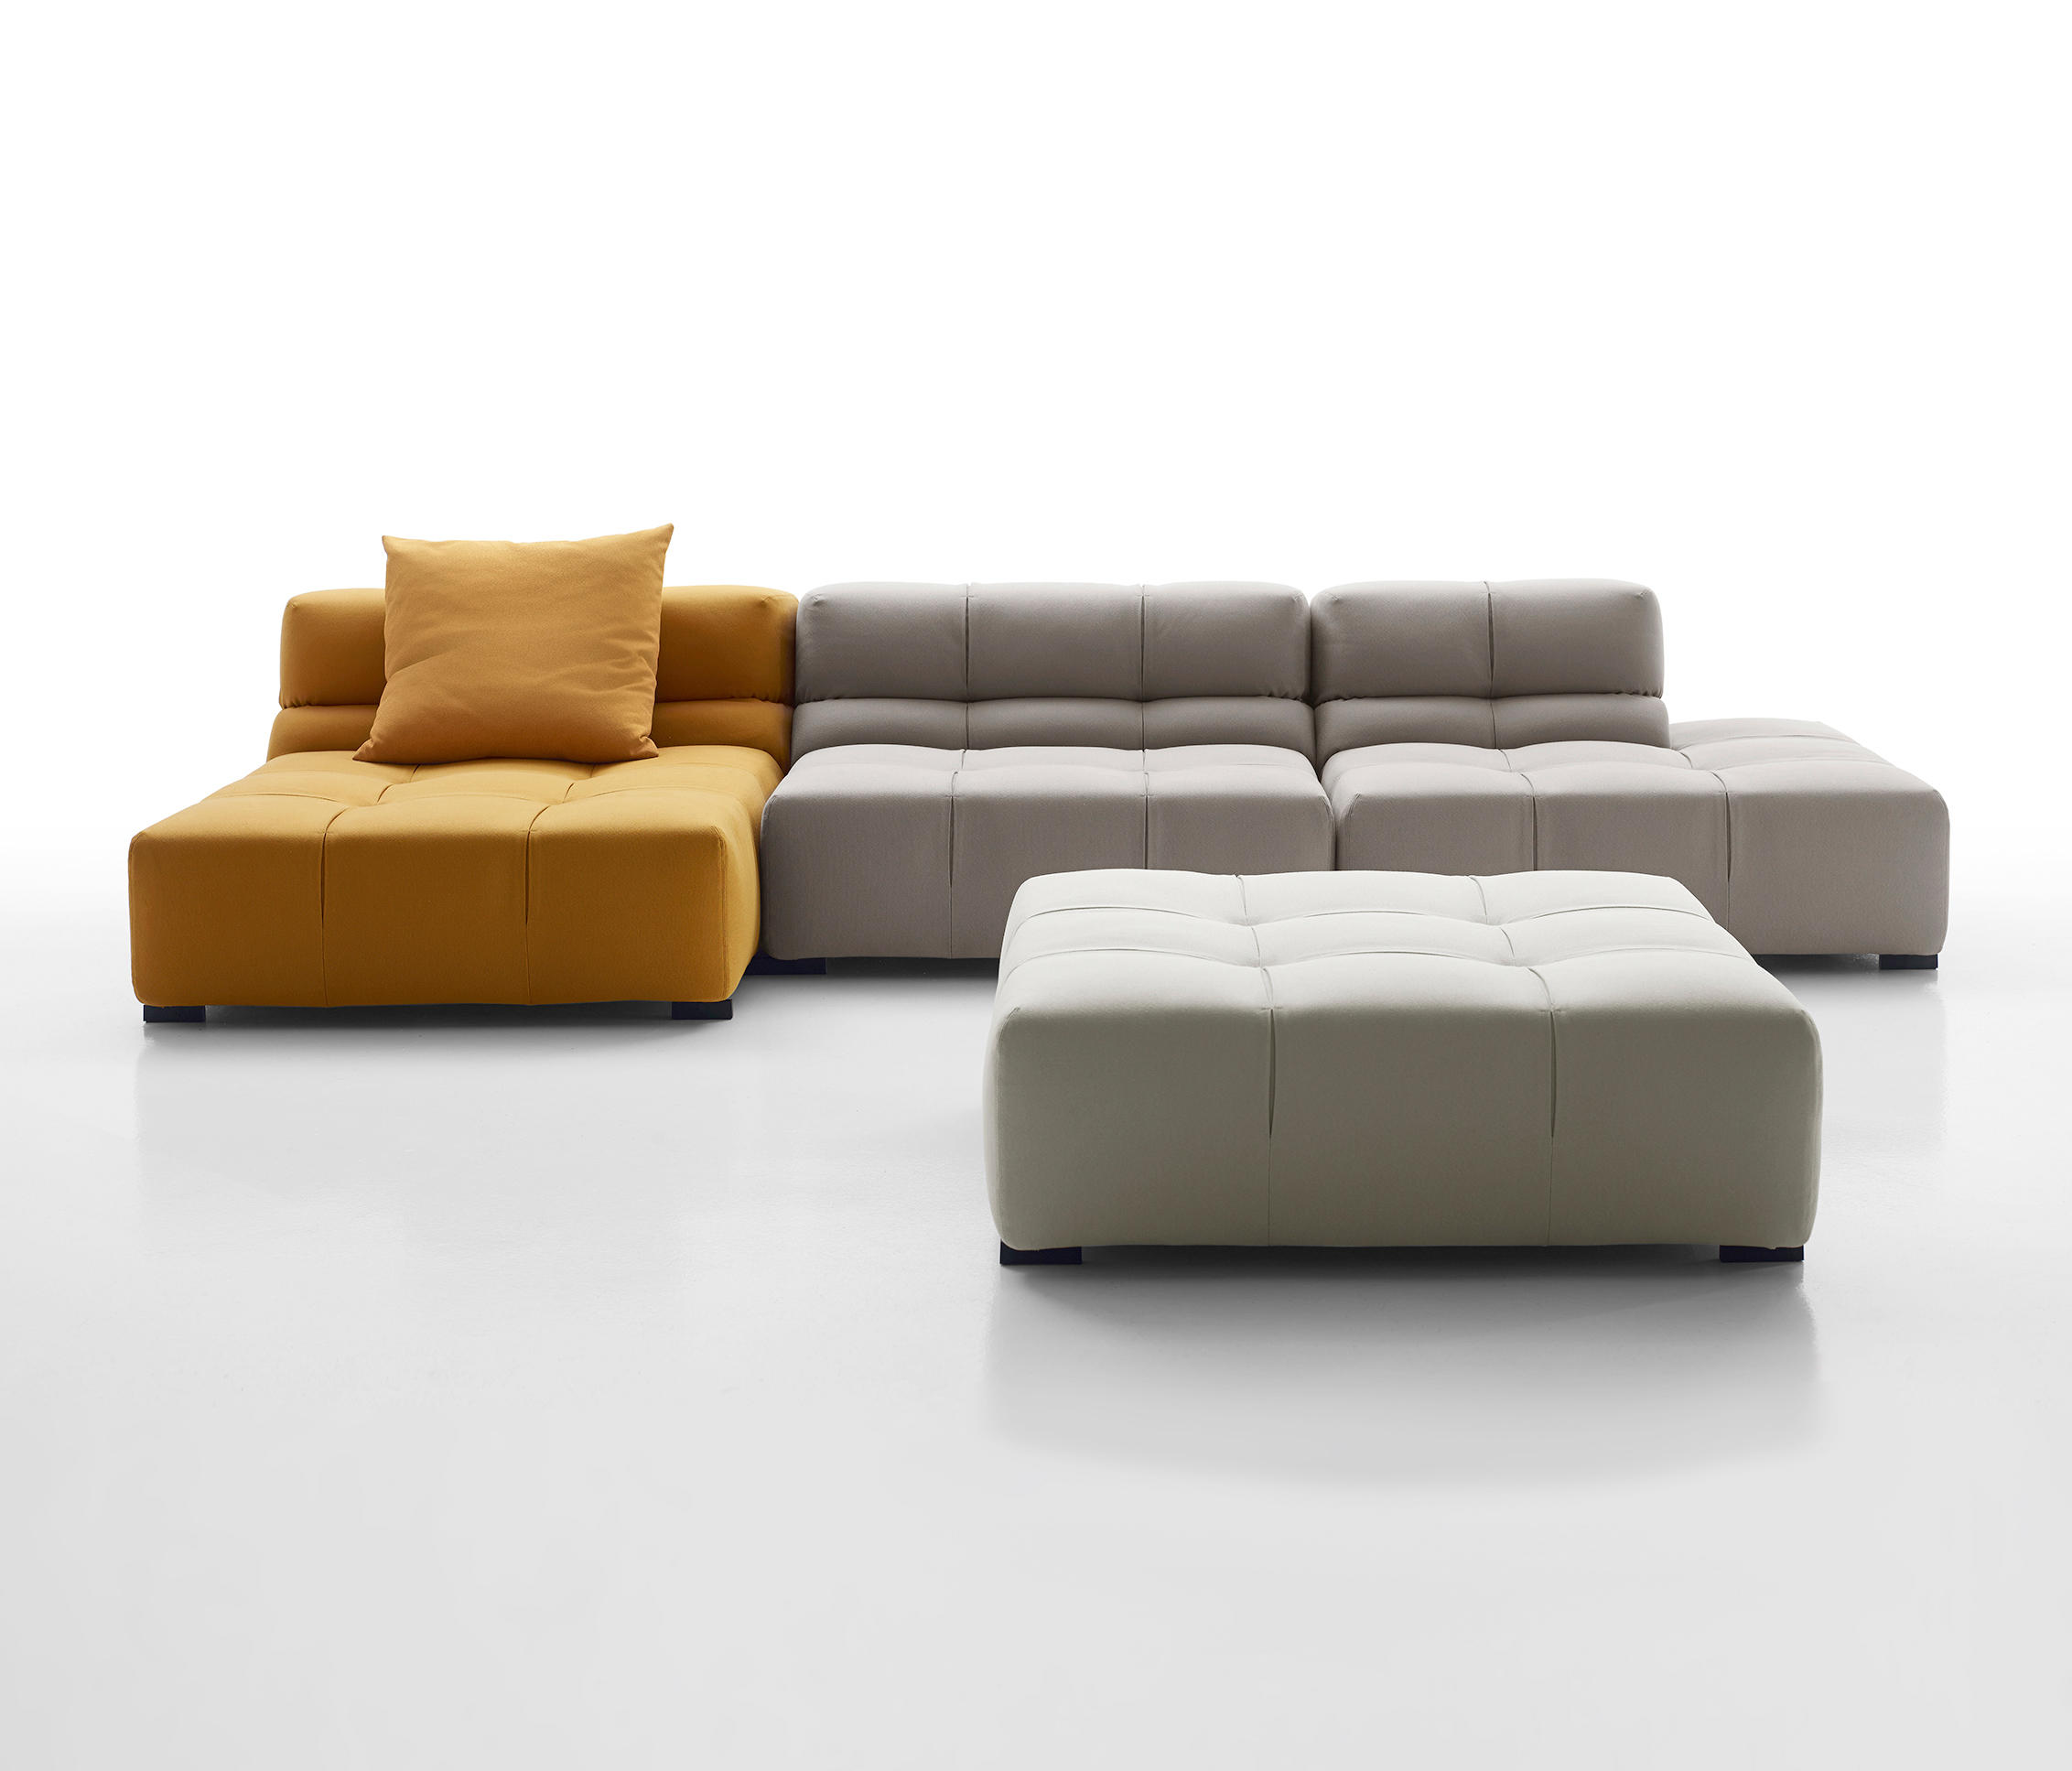 Tufty Time 39 15 Lounge Sofas From B B Italia Architonic